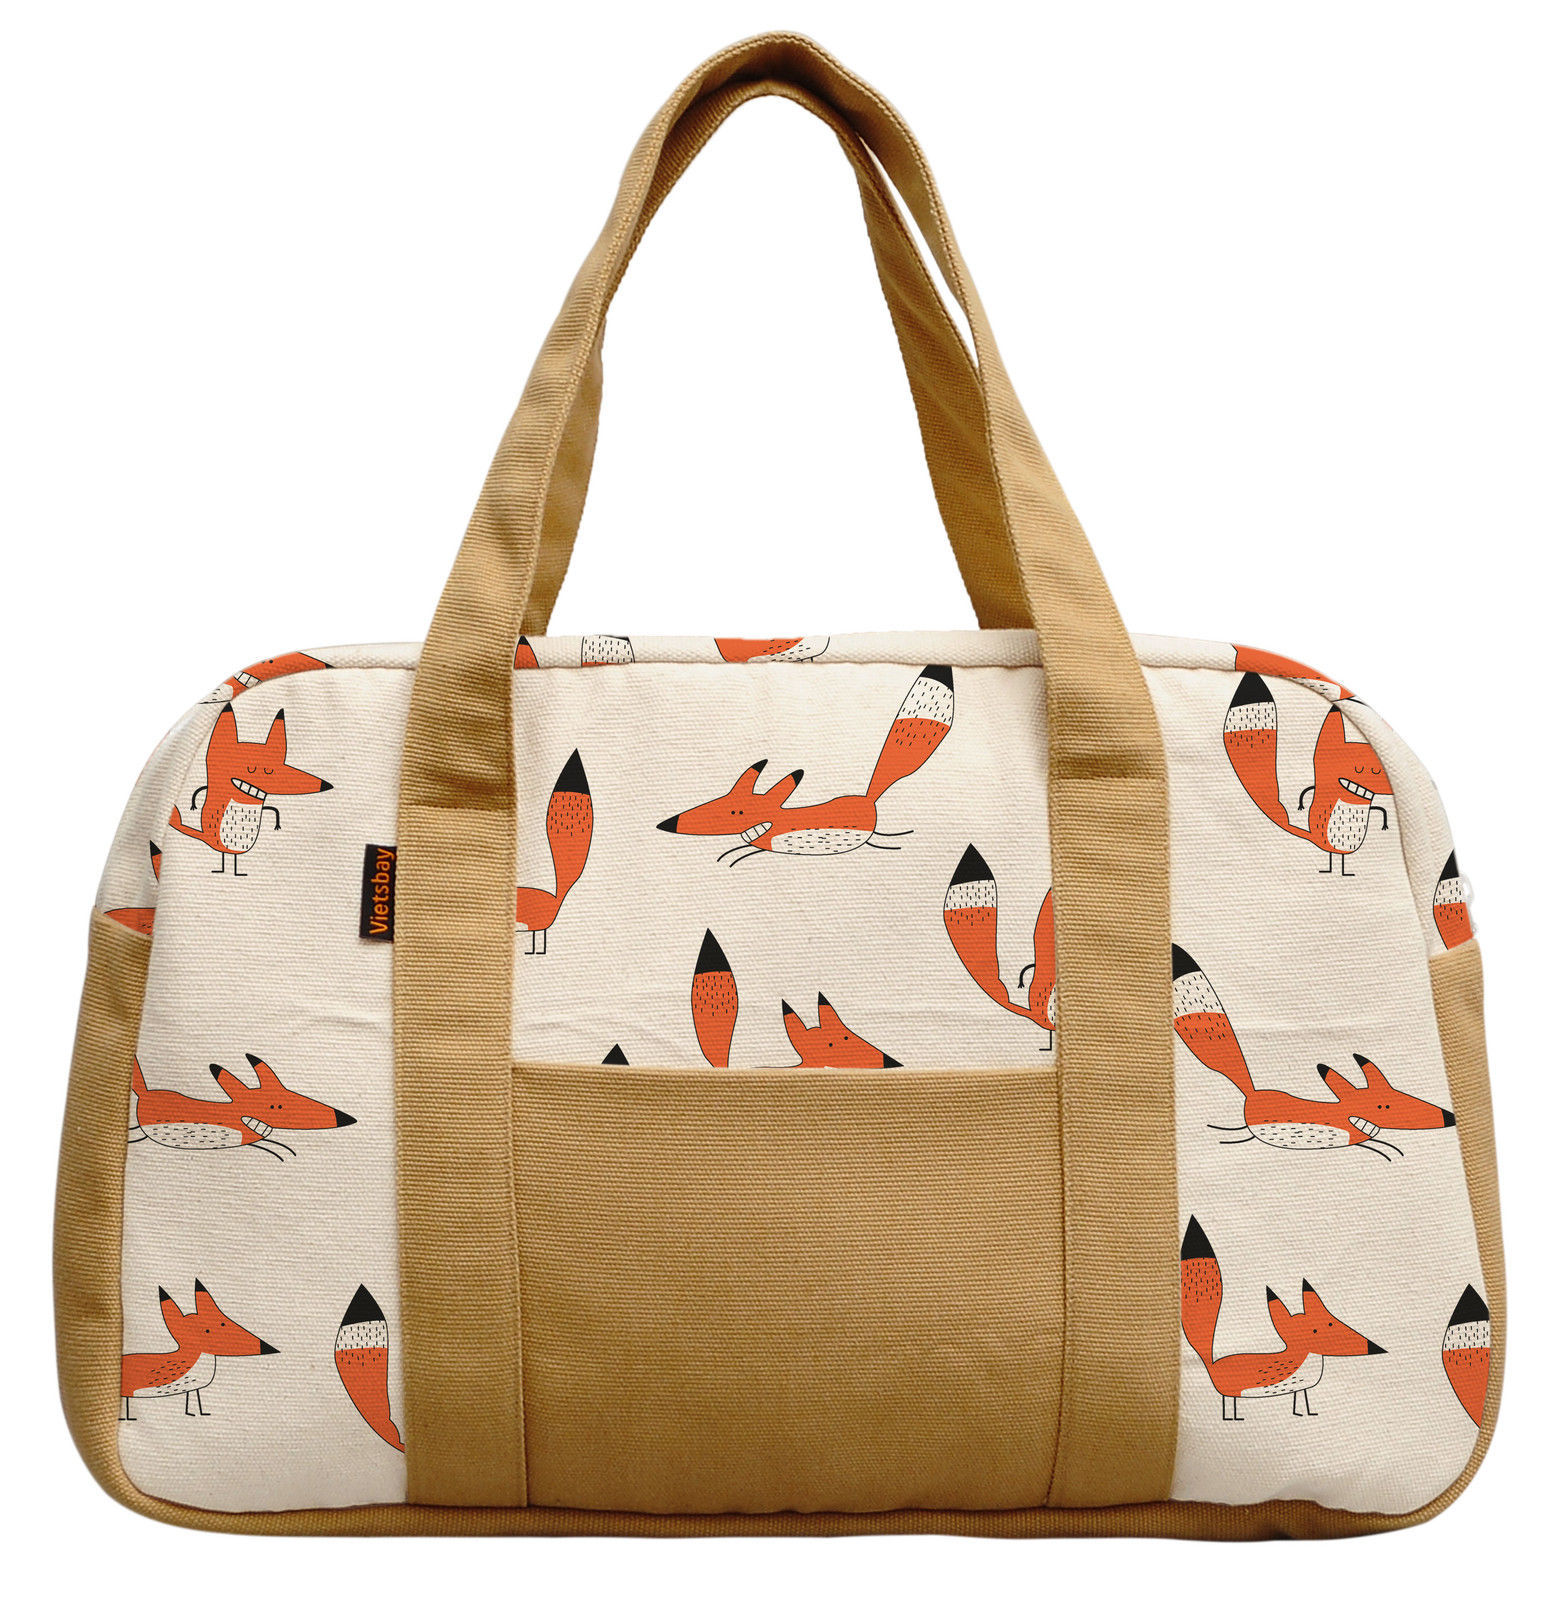 28.22$  Watch here - http://vibpz.justgood.pw/vig/item.php?t=0h6hkf8160 - Women's Funny Fox Pattern Printed Canvas Duffel Travel Bags WAS_19 28.22$